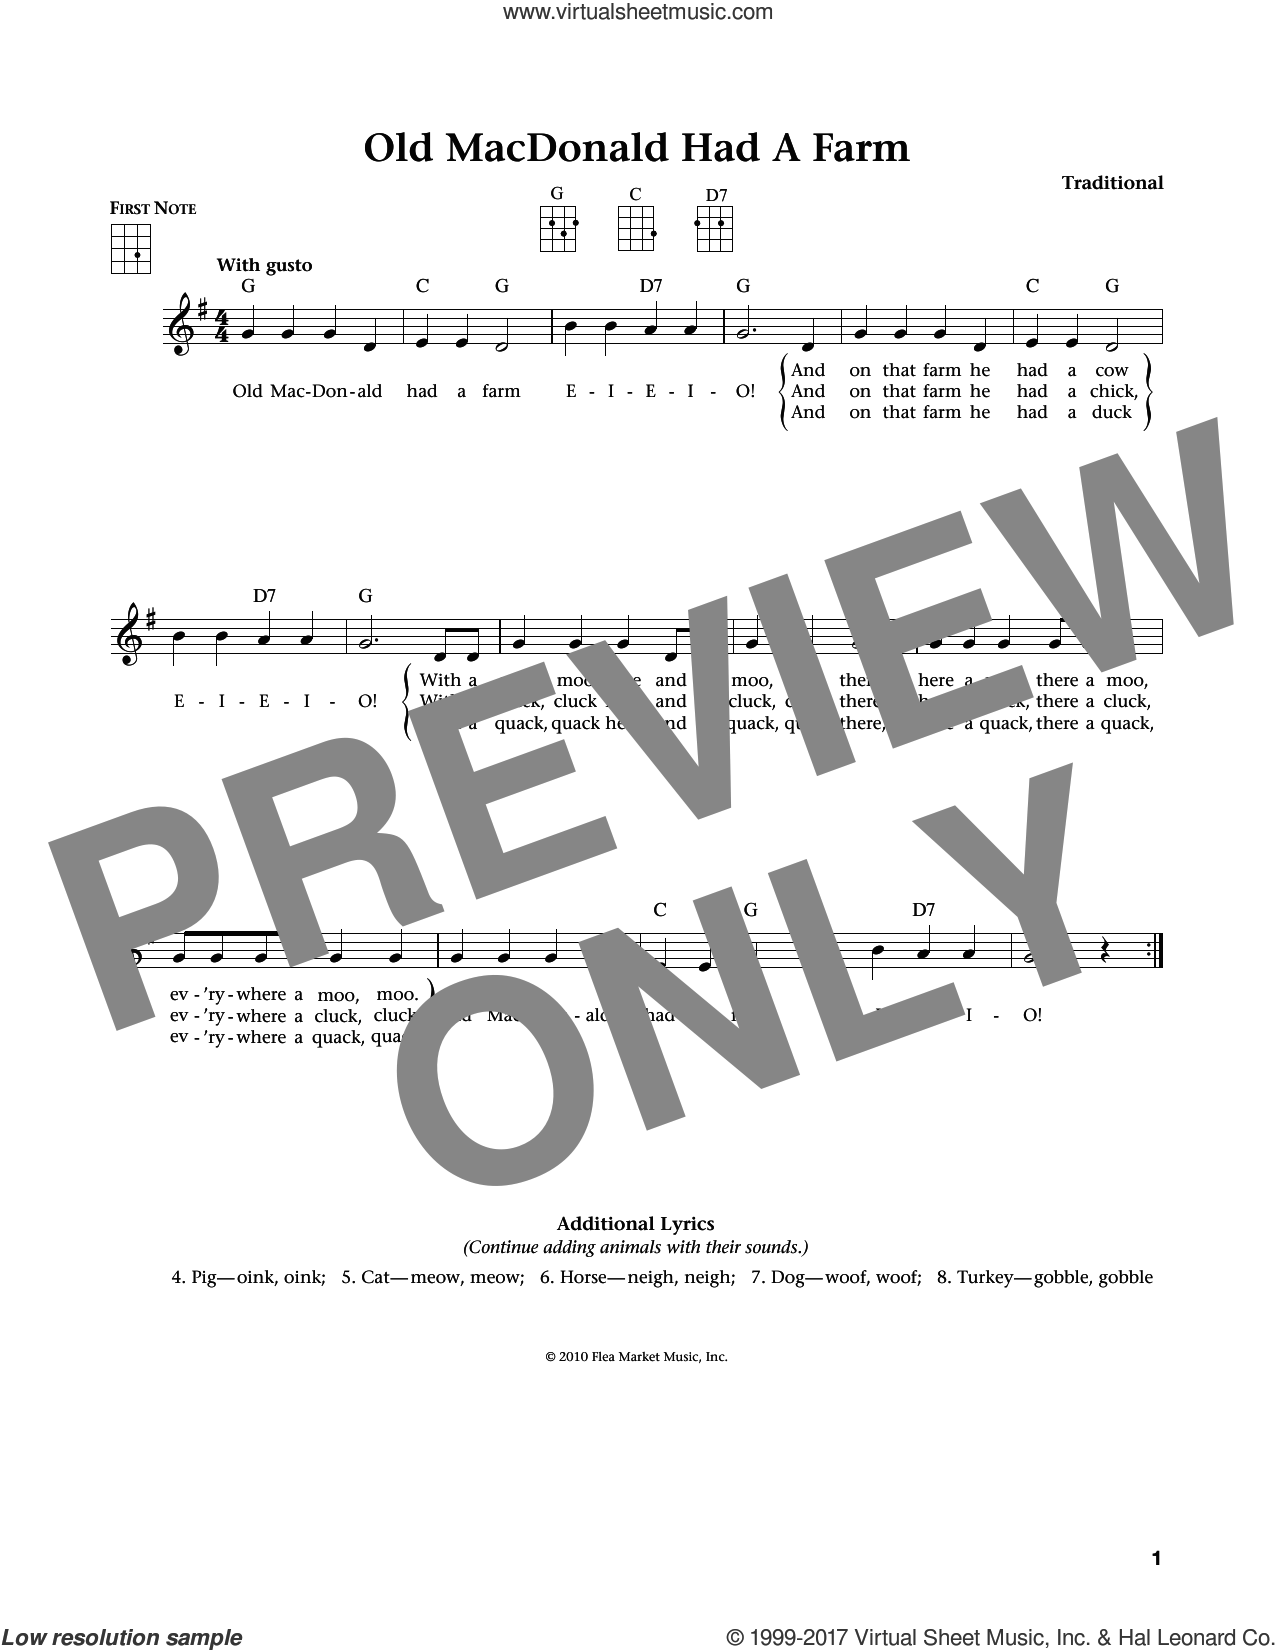 Old Macdonald Had A Farm sheet music for ukulele. Score Image Preview.